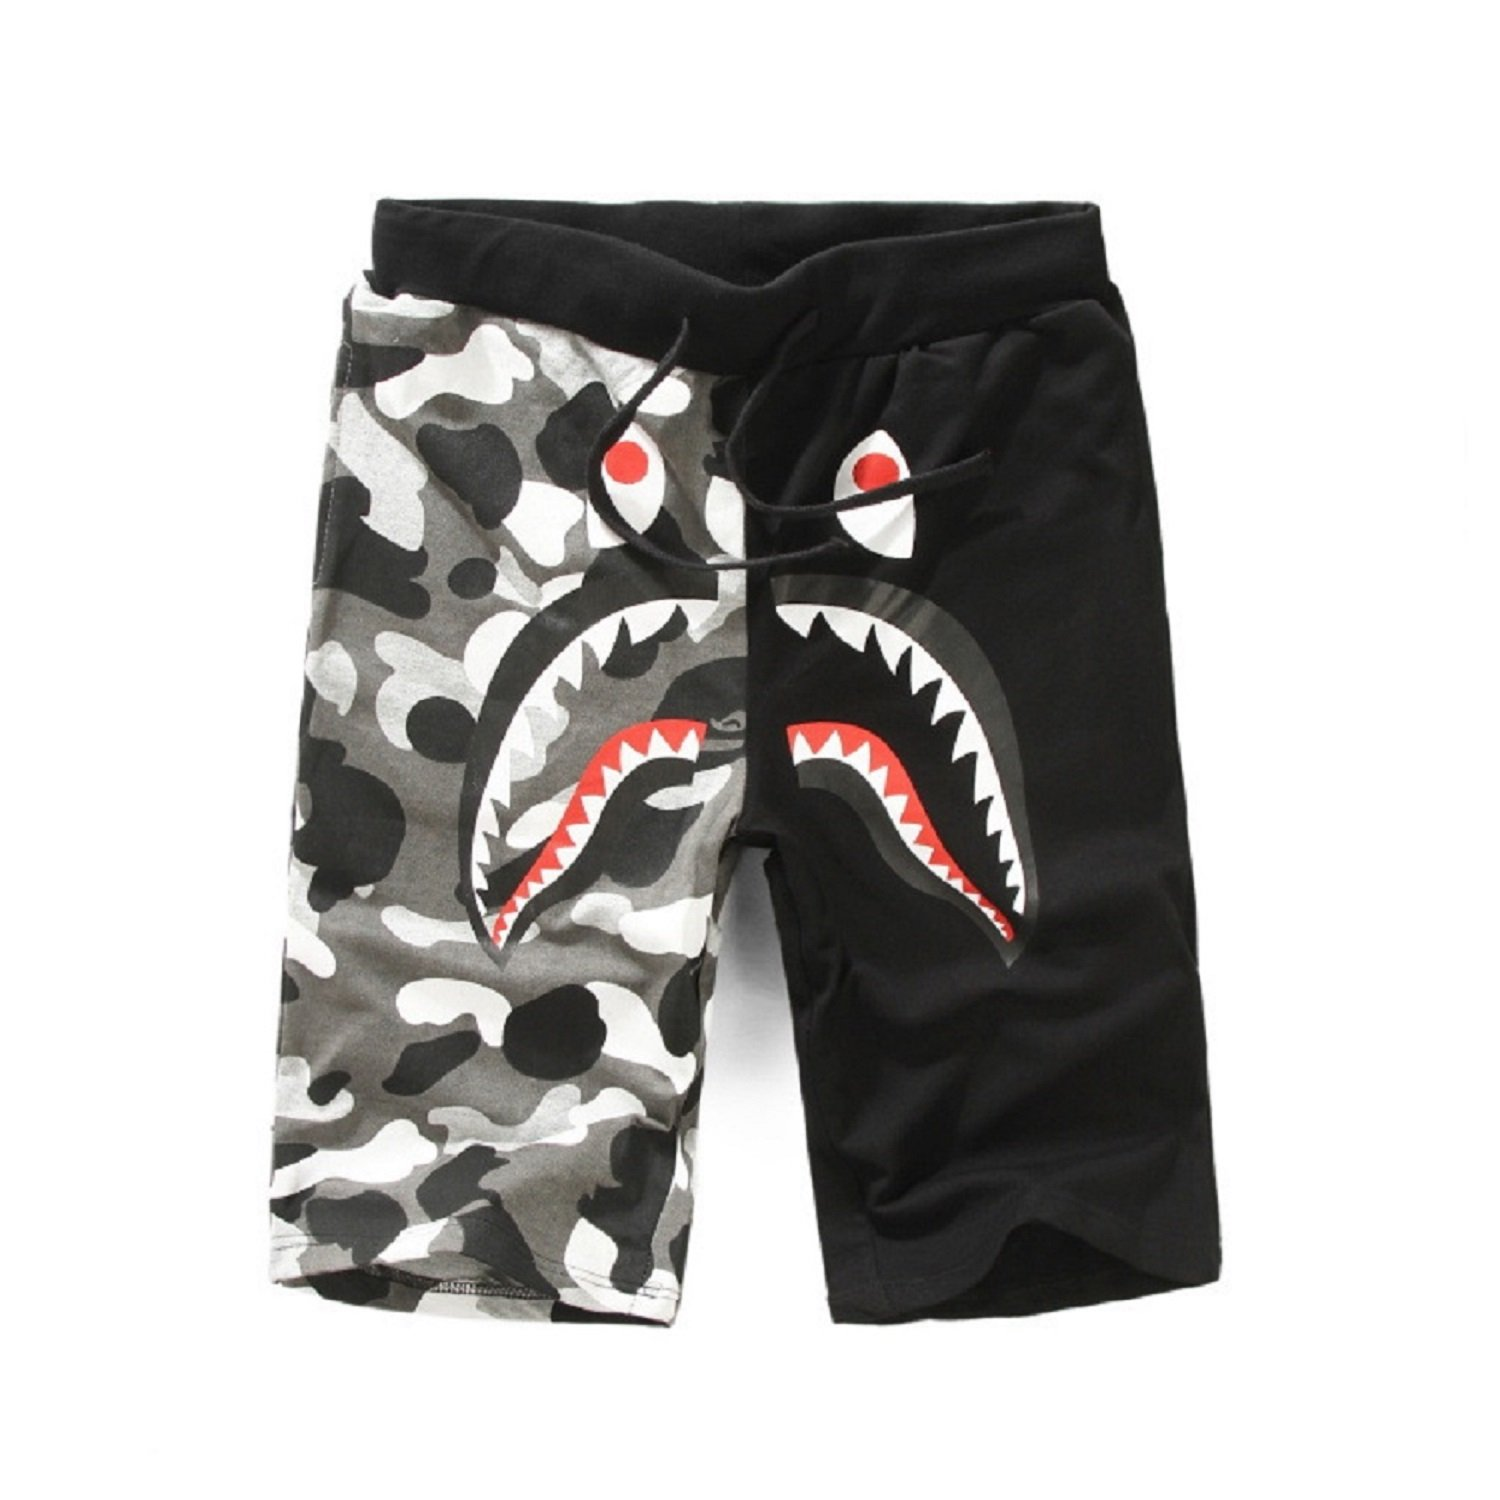 Athletic Pants Shark Pattern Camouflage Stitching Shorts Men Drawstring Black Sports Shorts